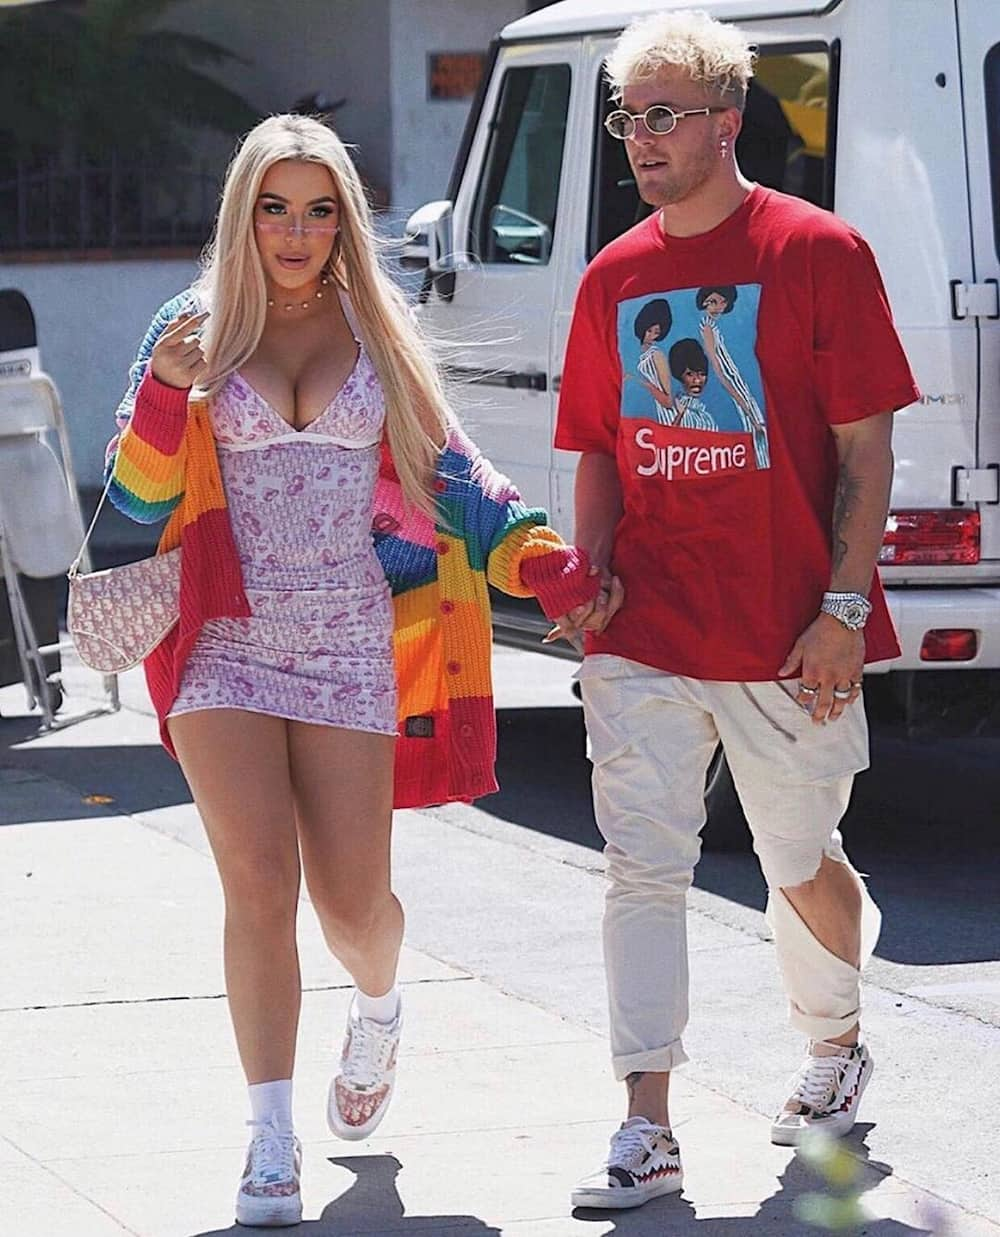 Who is Jake Paul married to?